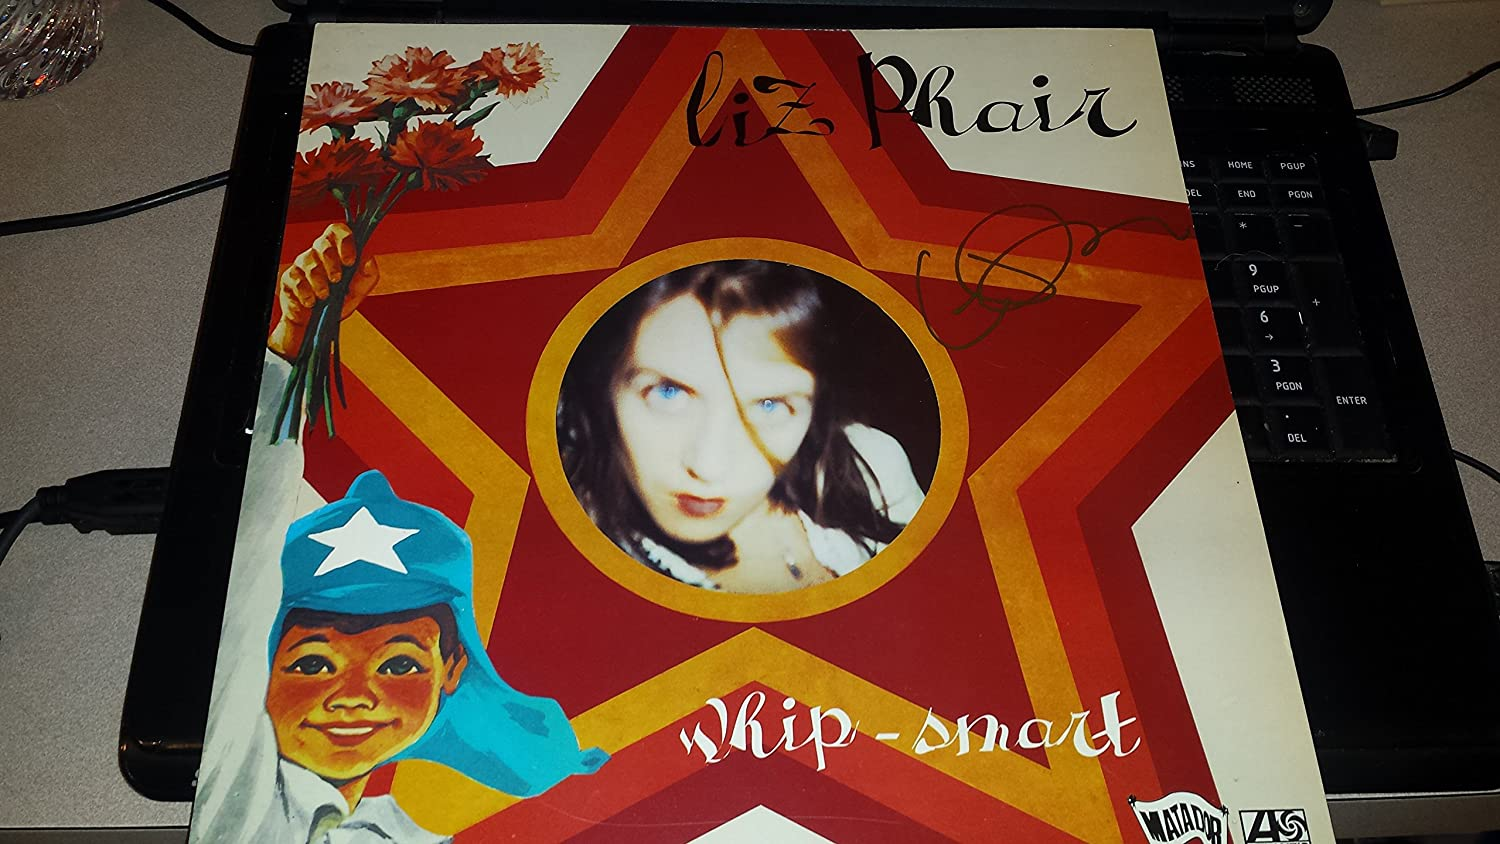 LIZ PHAIR signed 12x12 album flat 1994' Whip Smart/UACC Registered Dealer # 212 LIZ PHAIR signed 12x12 album flat 1994 Whip Smart/UACC Registered Dealer # 212